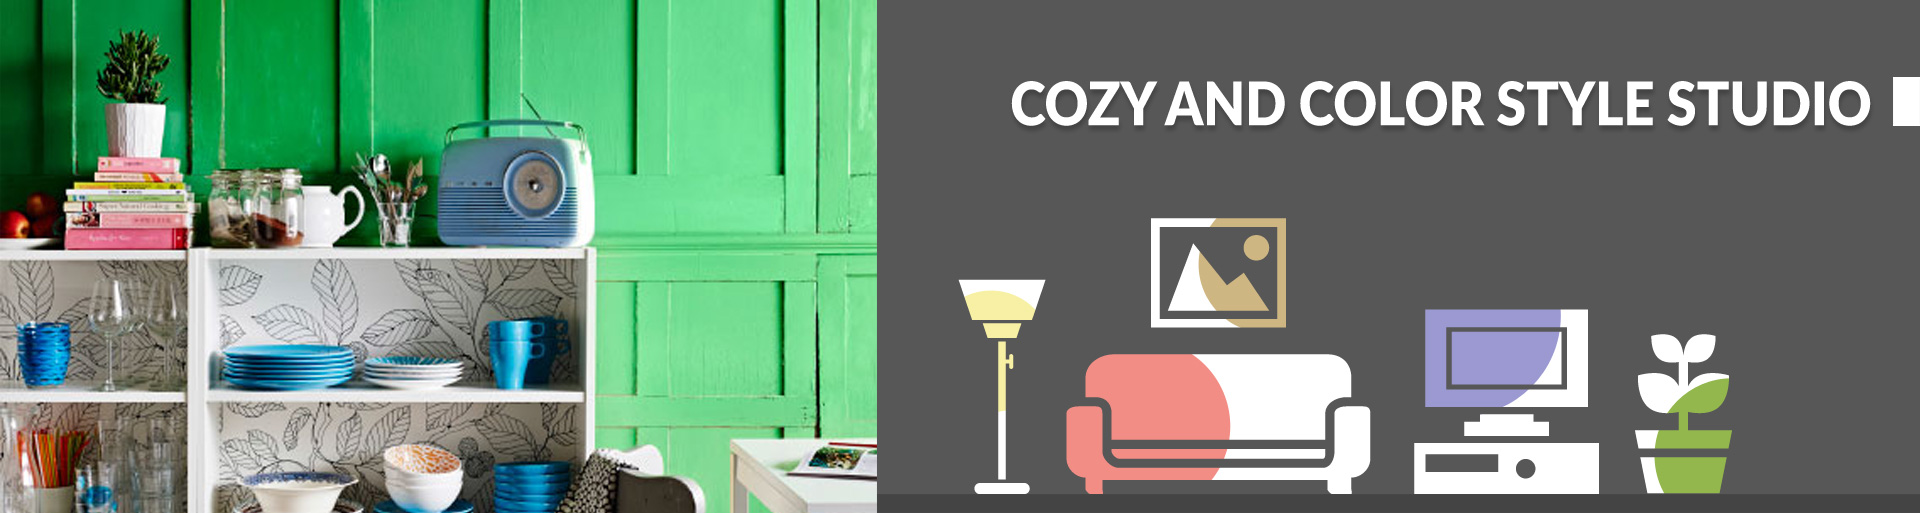 Cozy and color style studio